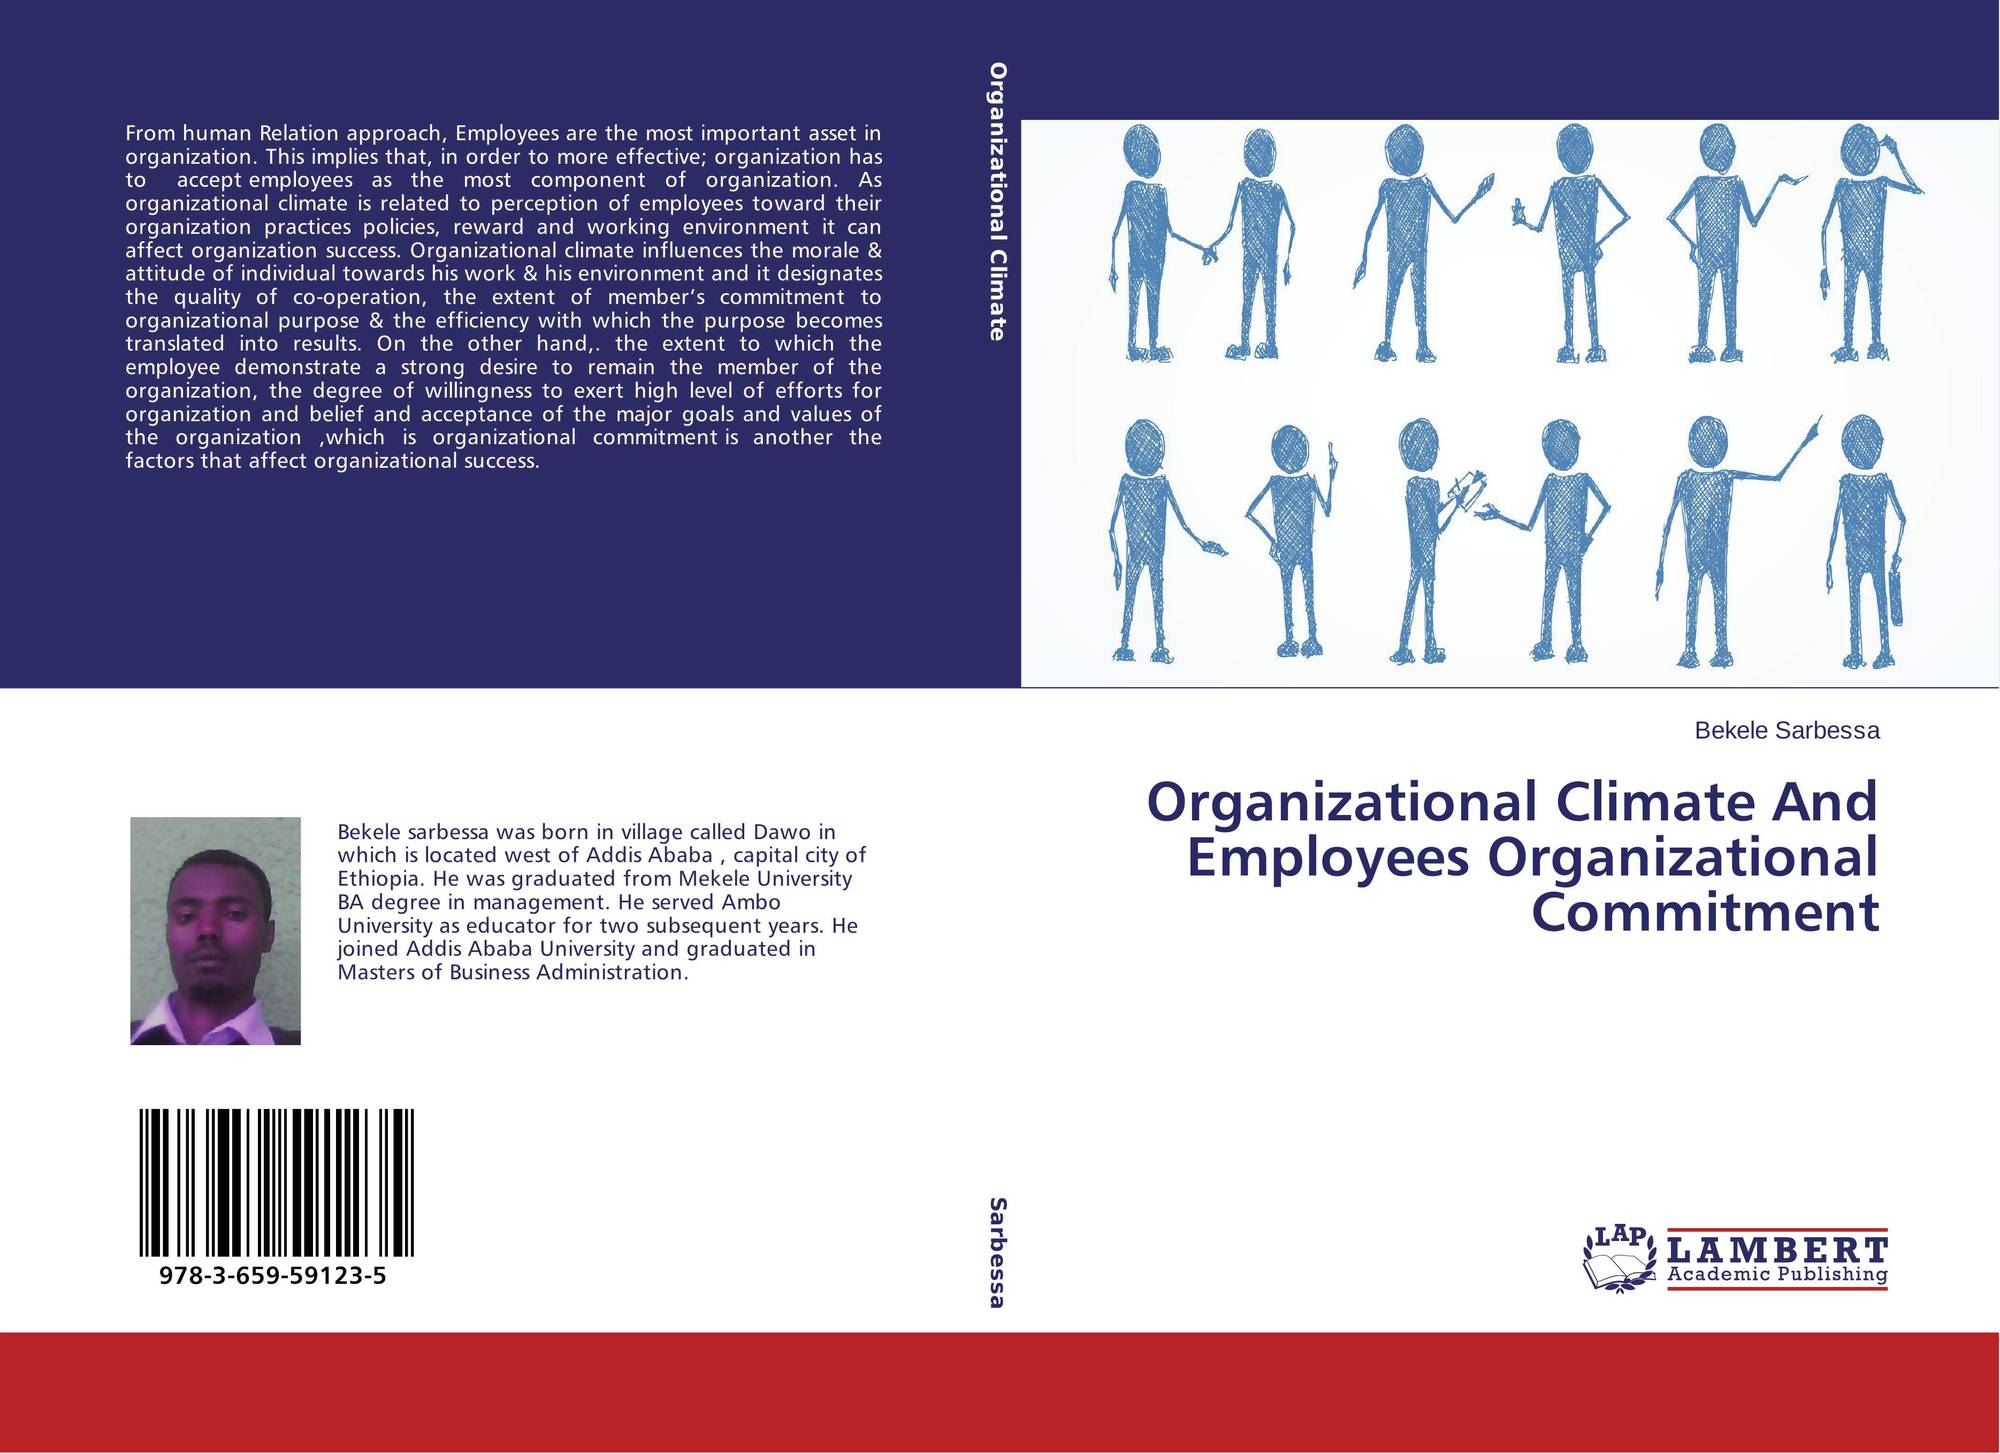 employee perception on organizational climate and Employee workplace perceptions may be represented by organizational climate this paper presents a shortened (35-item) version of the tourism and hospitality.